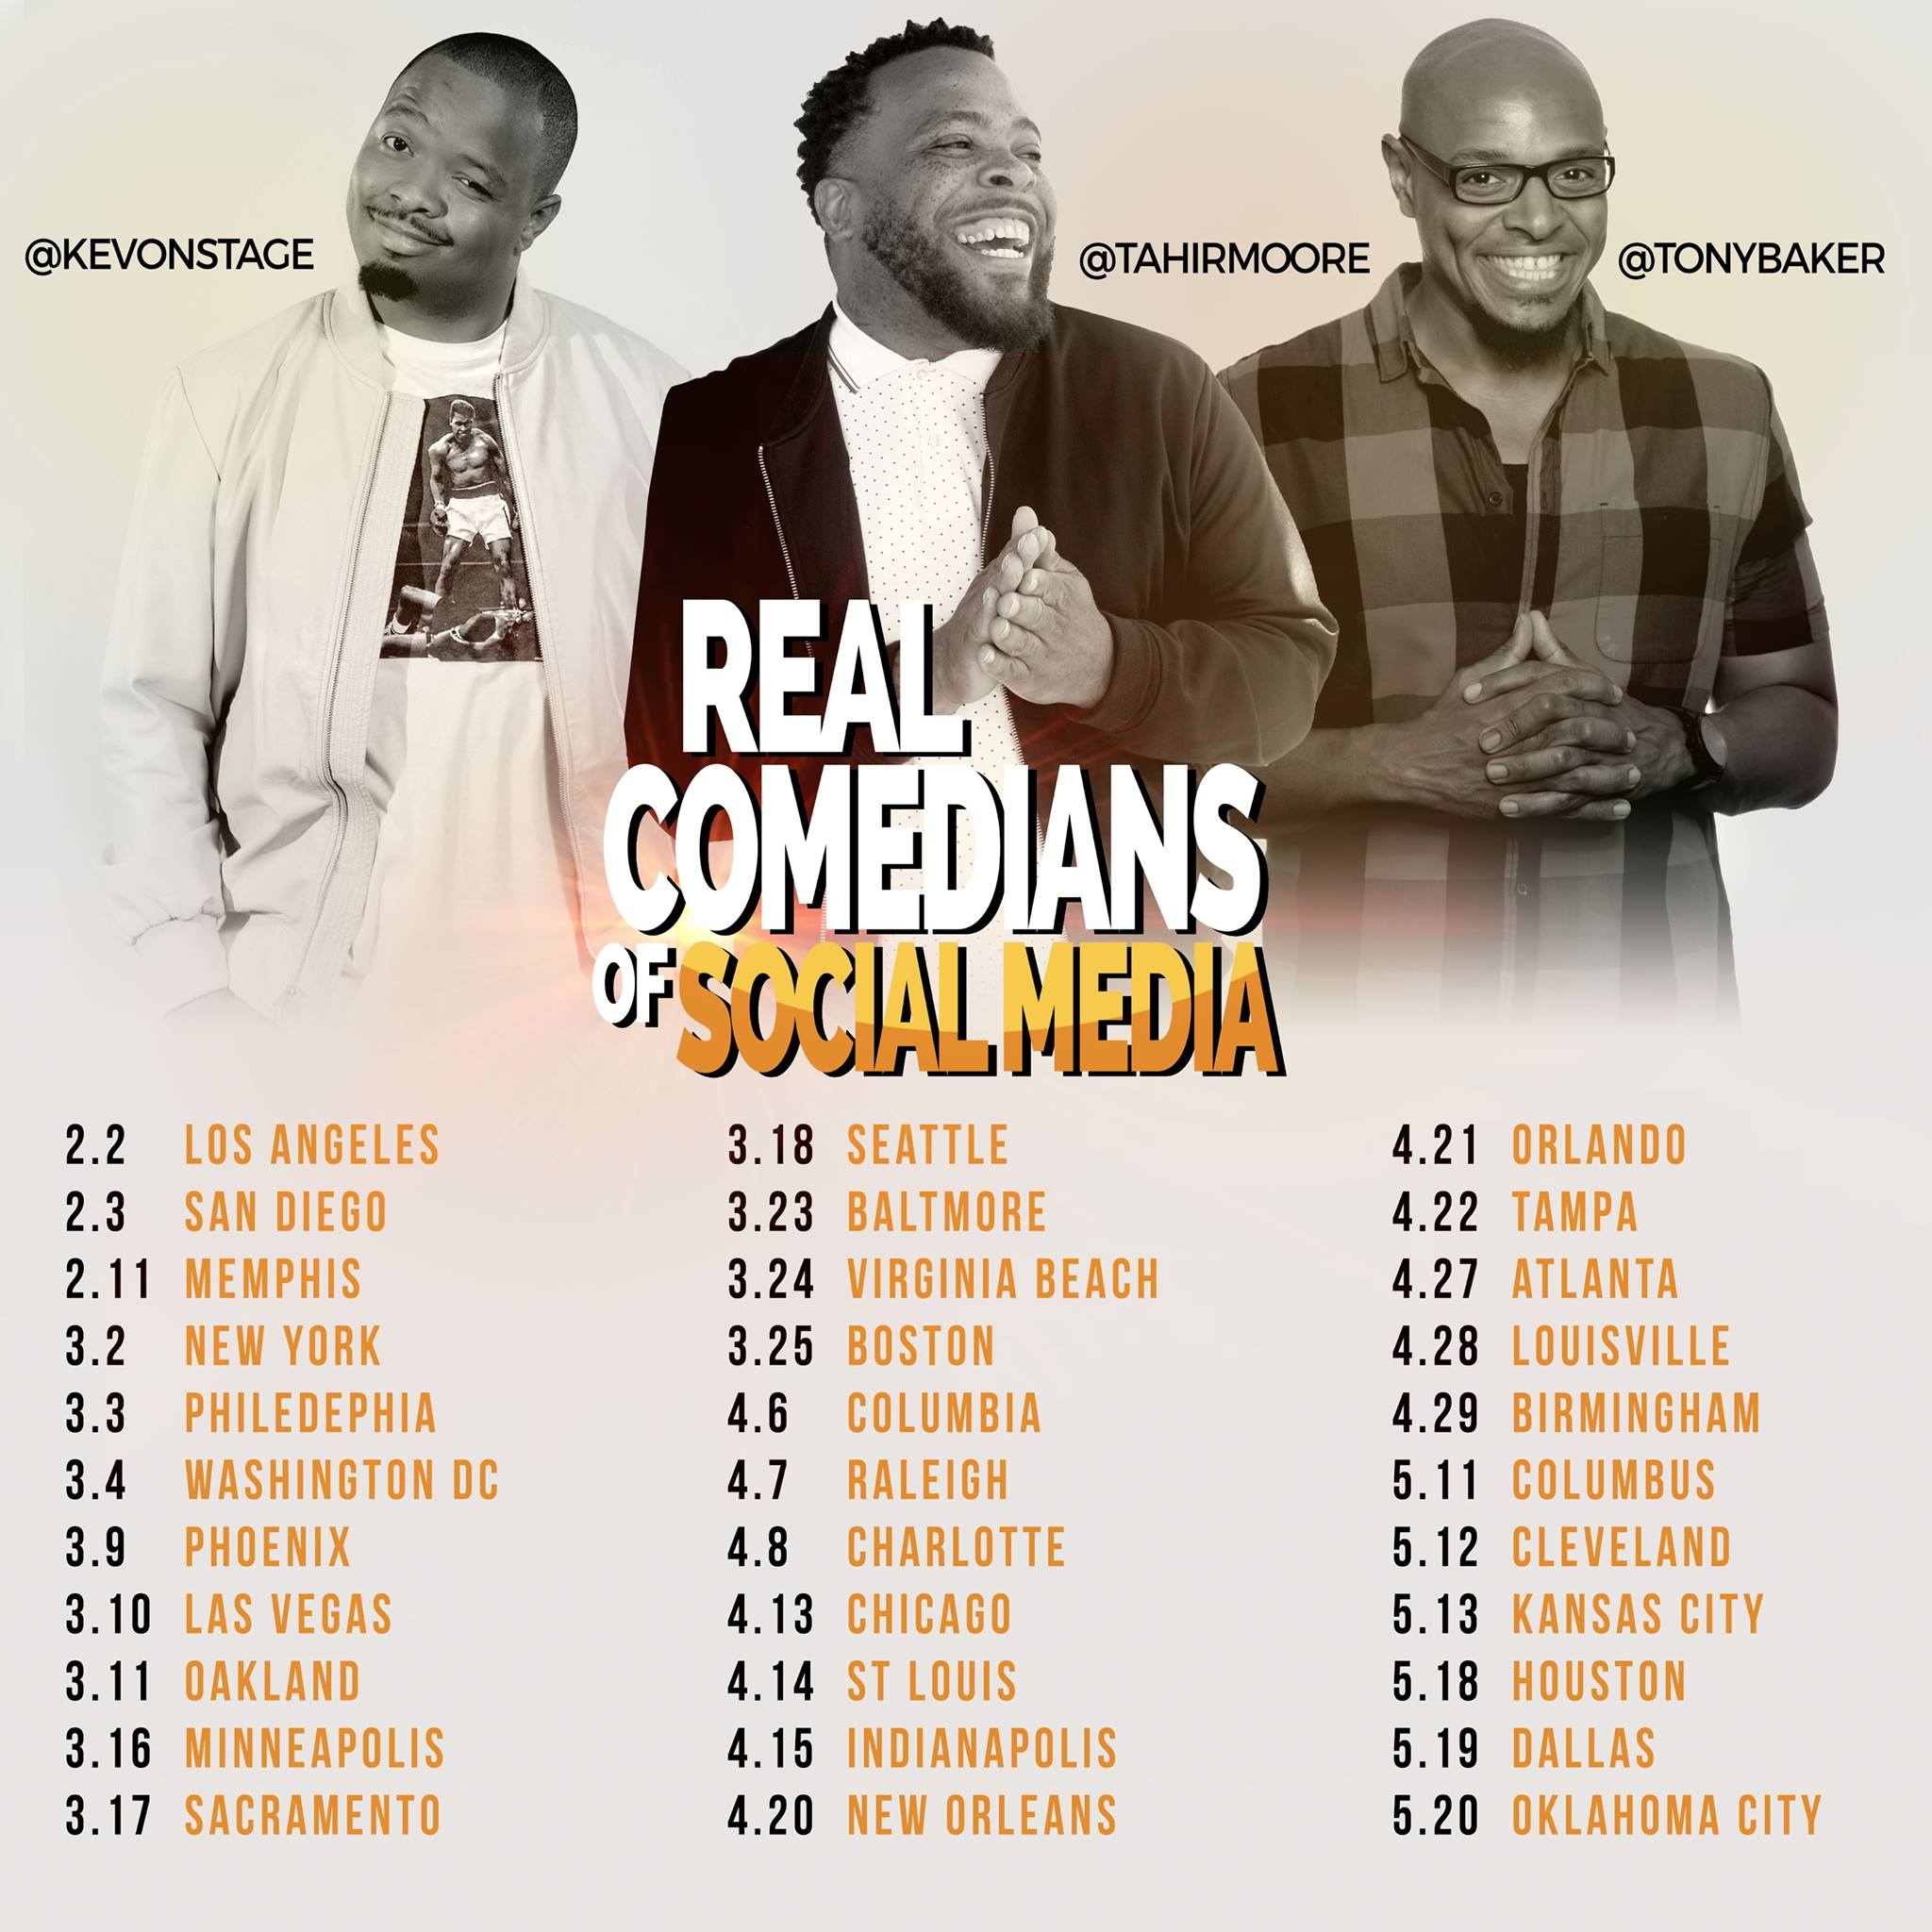 Real Comedians of social Media San Diego Tour @ The Salvation Army Kroc Center - San Diego 6845 University Ave, San Diego, California 92115 | San Diego | California | United States